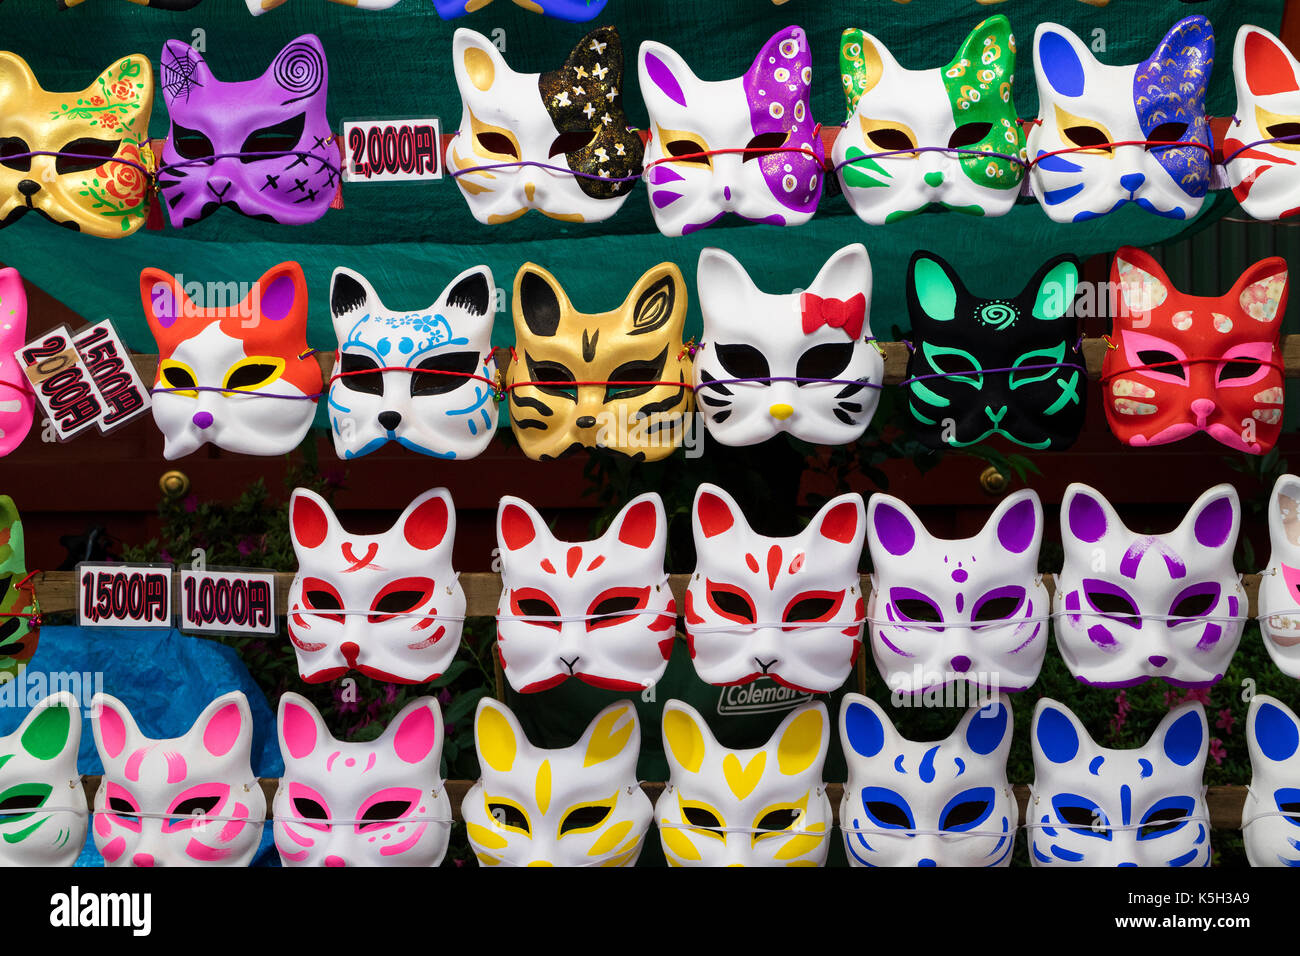 Tokyo, Japan - May 14, 2017:  Cat masks for sale hanging on the wall at the Kanda Matsuri Festival - Stock Image